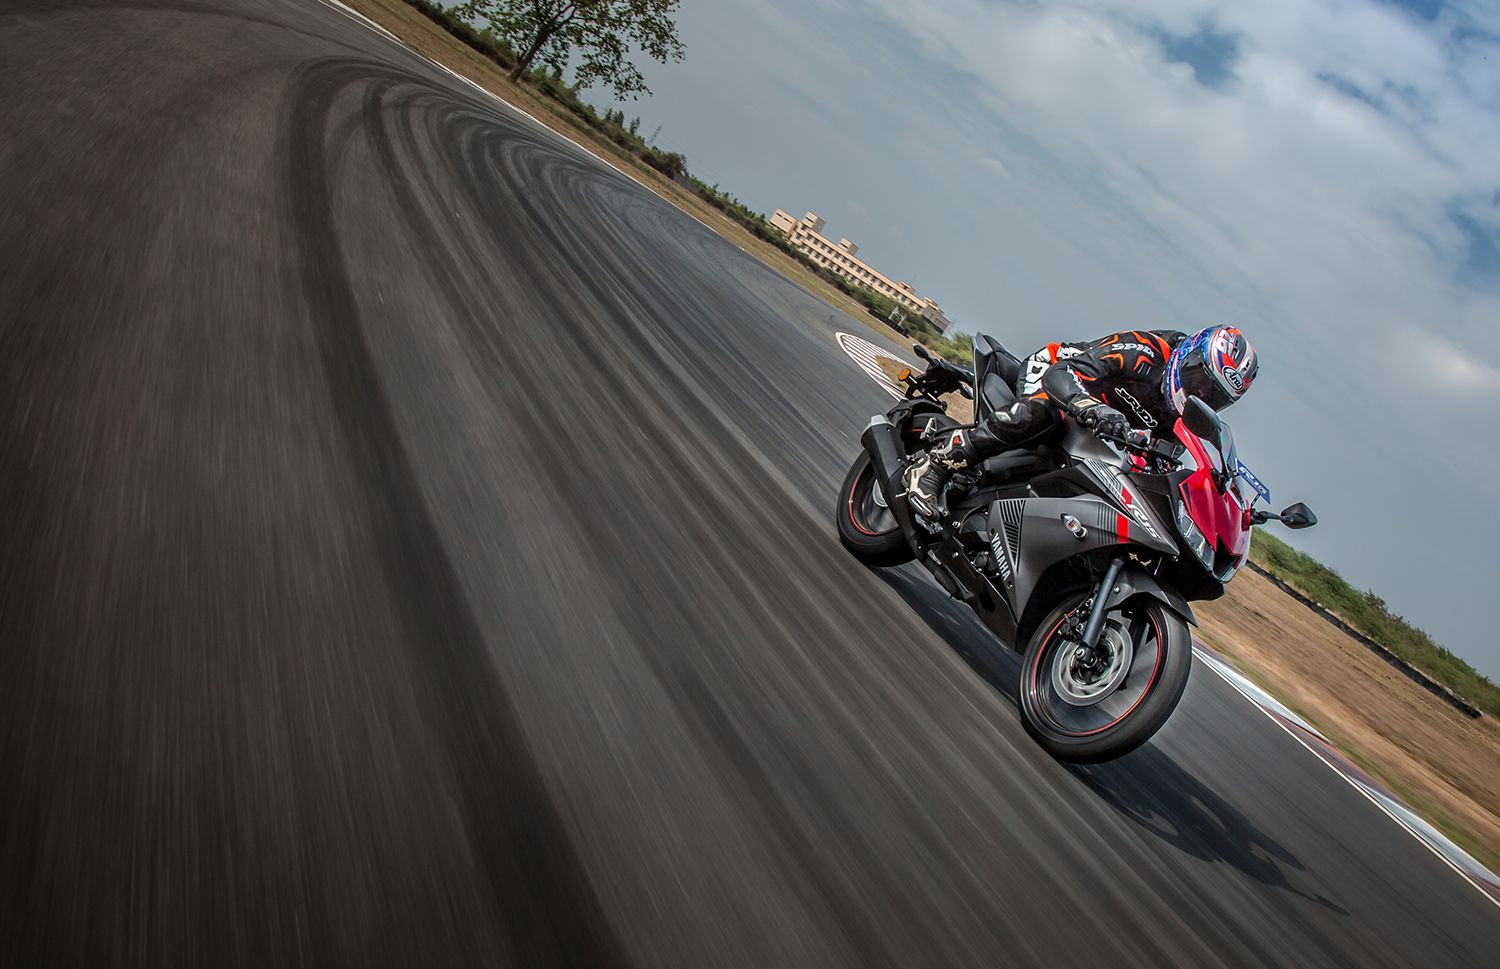 Yamaha R15 V3.0: First Ride Review